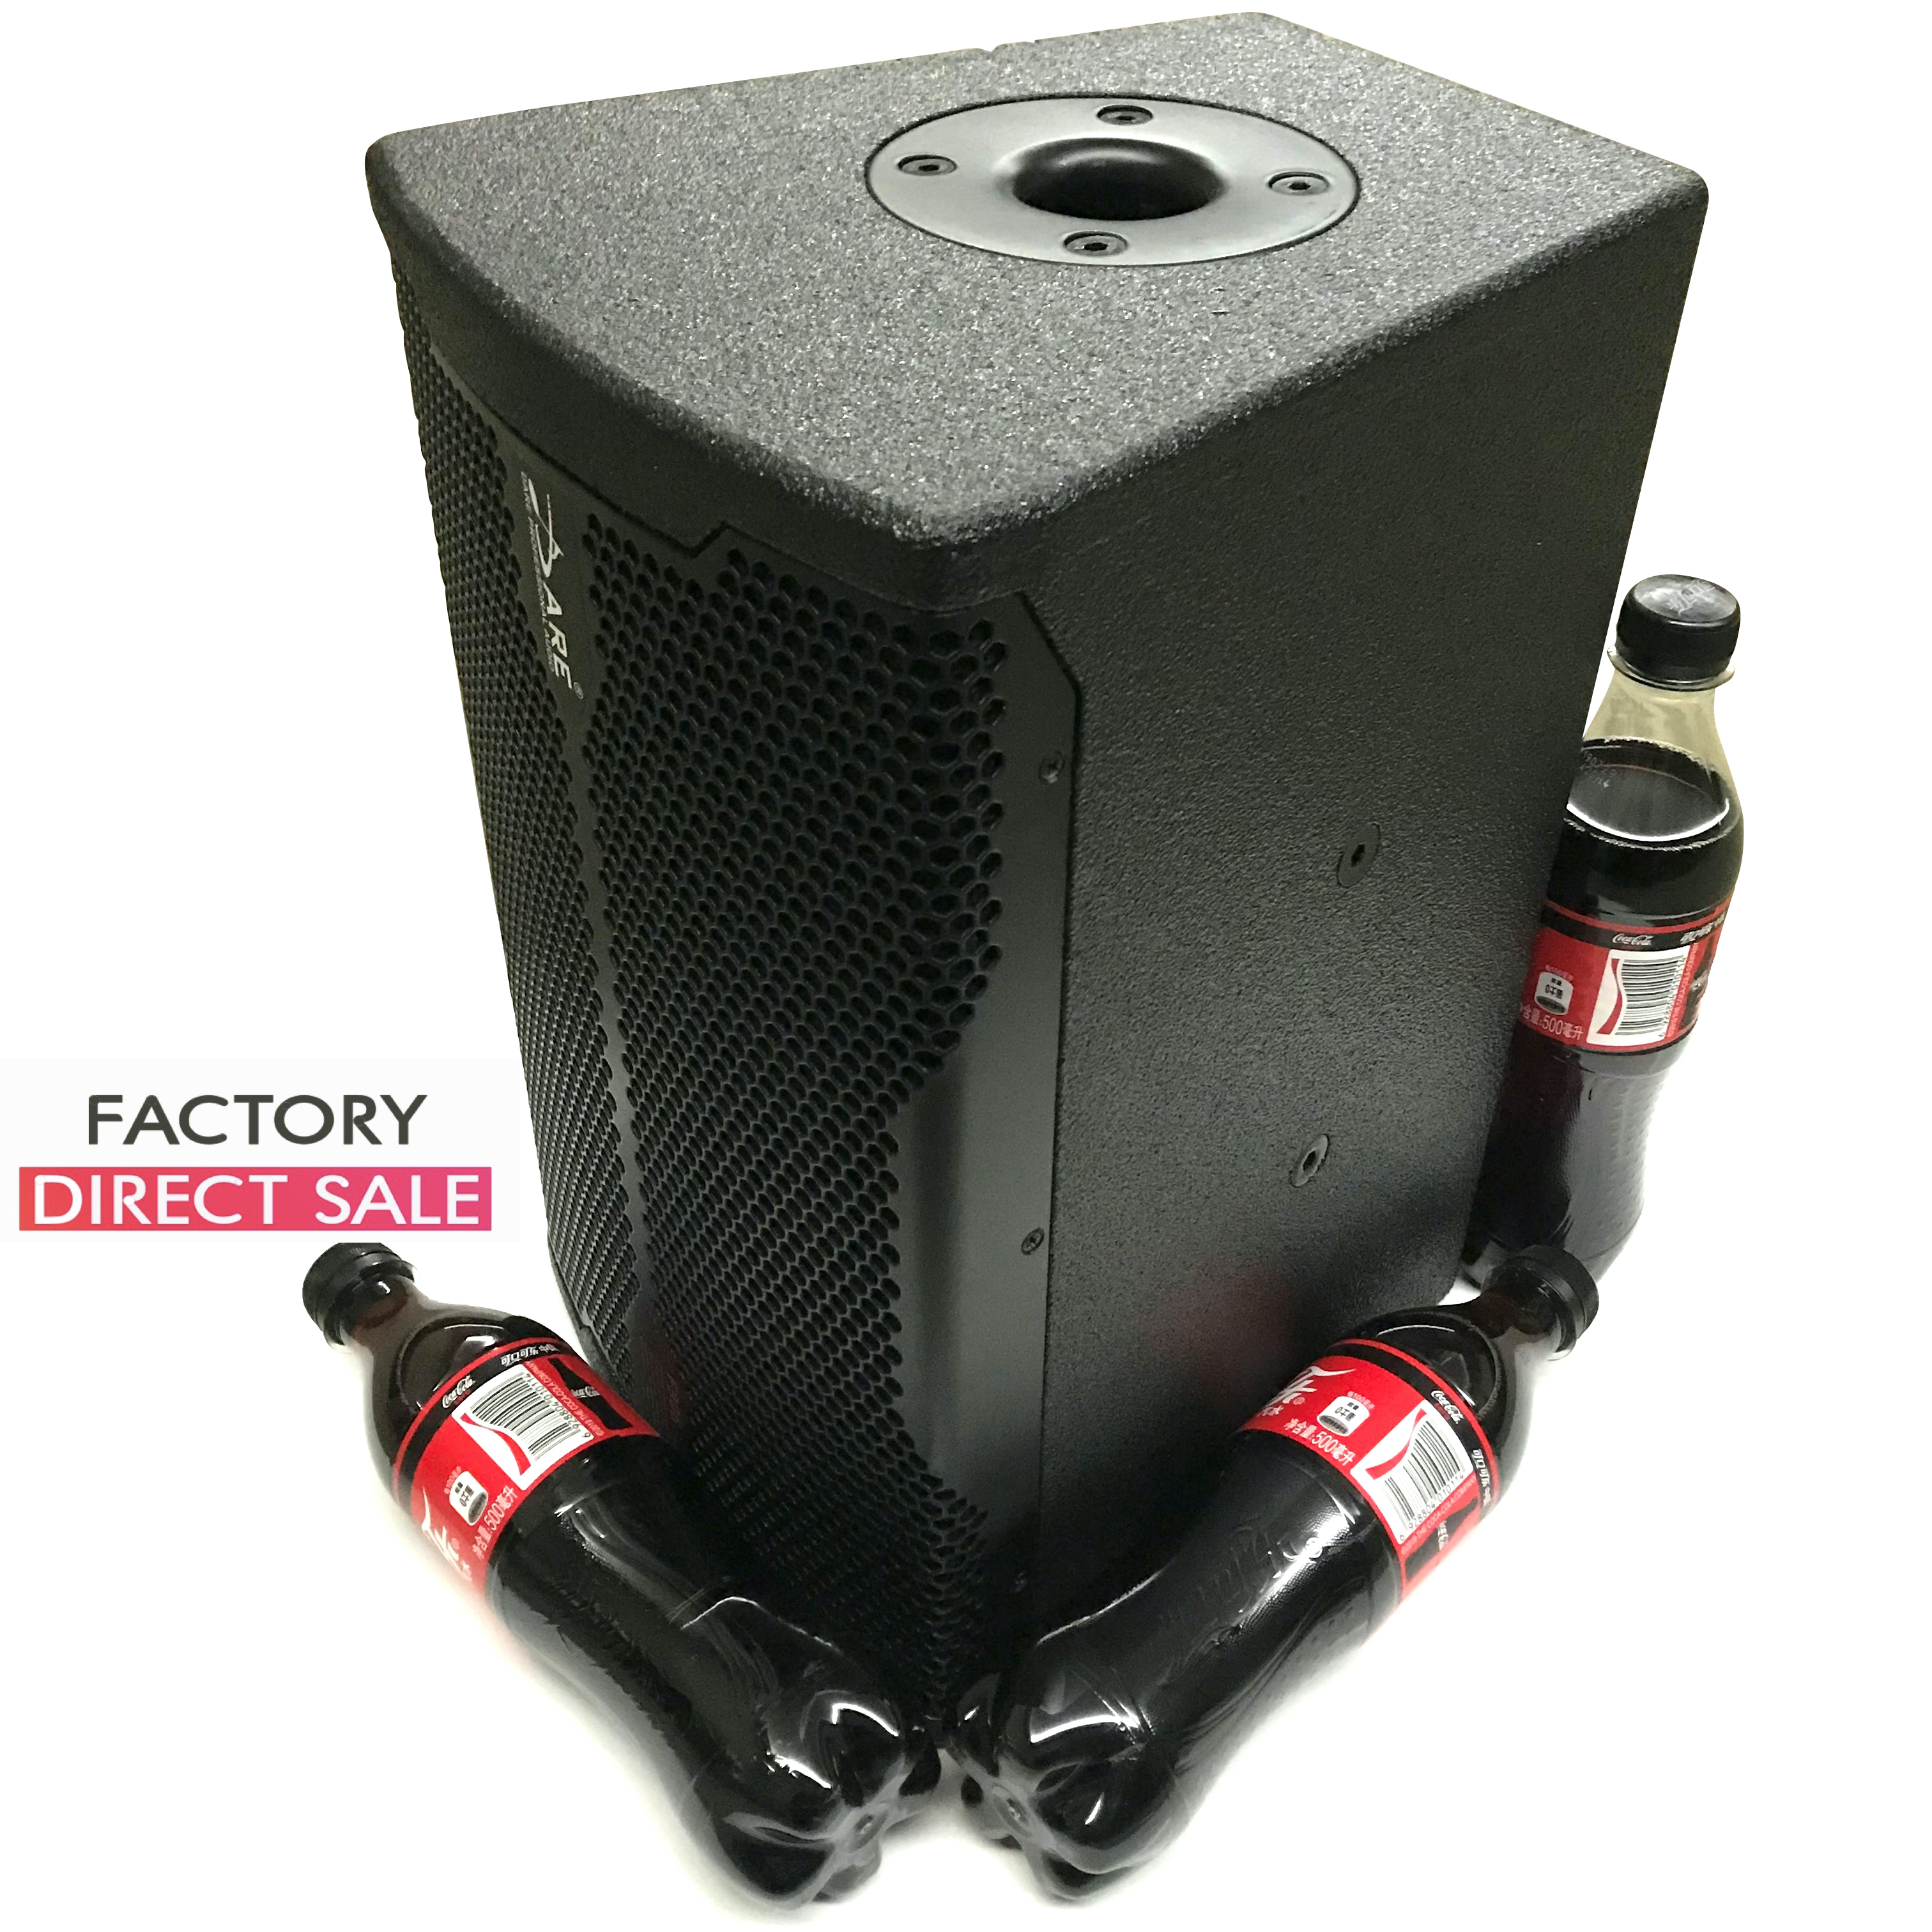 6 8 10 <strong>12</strong> 15 inch Passive full range PA Speaker system 2way compact high power SPL class <strong>D</strong> dsp